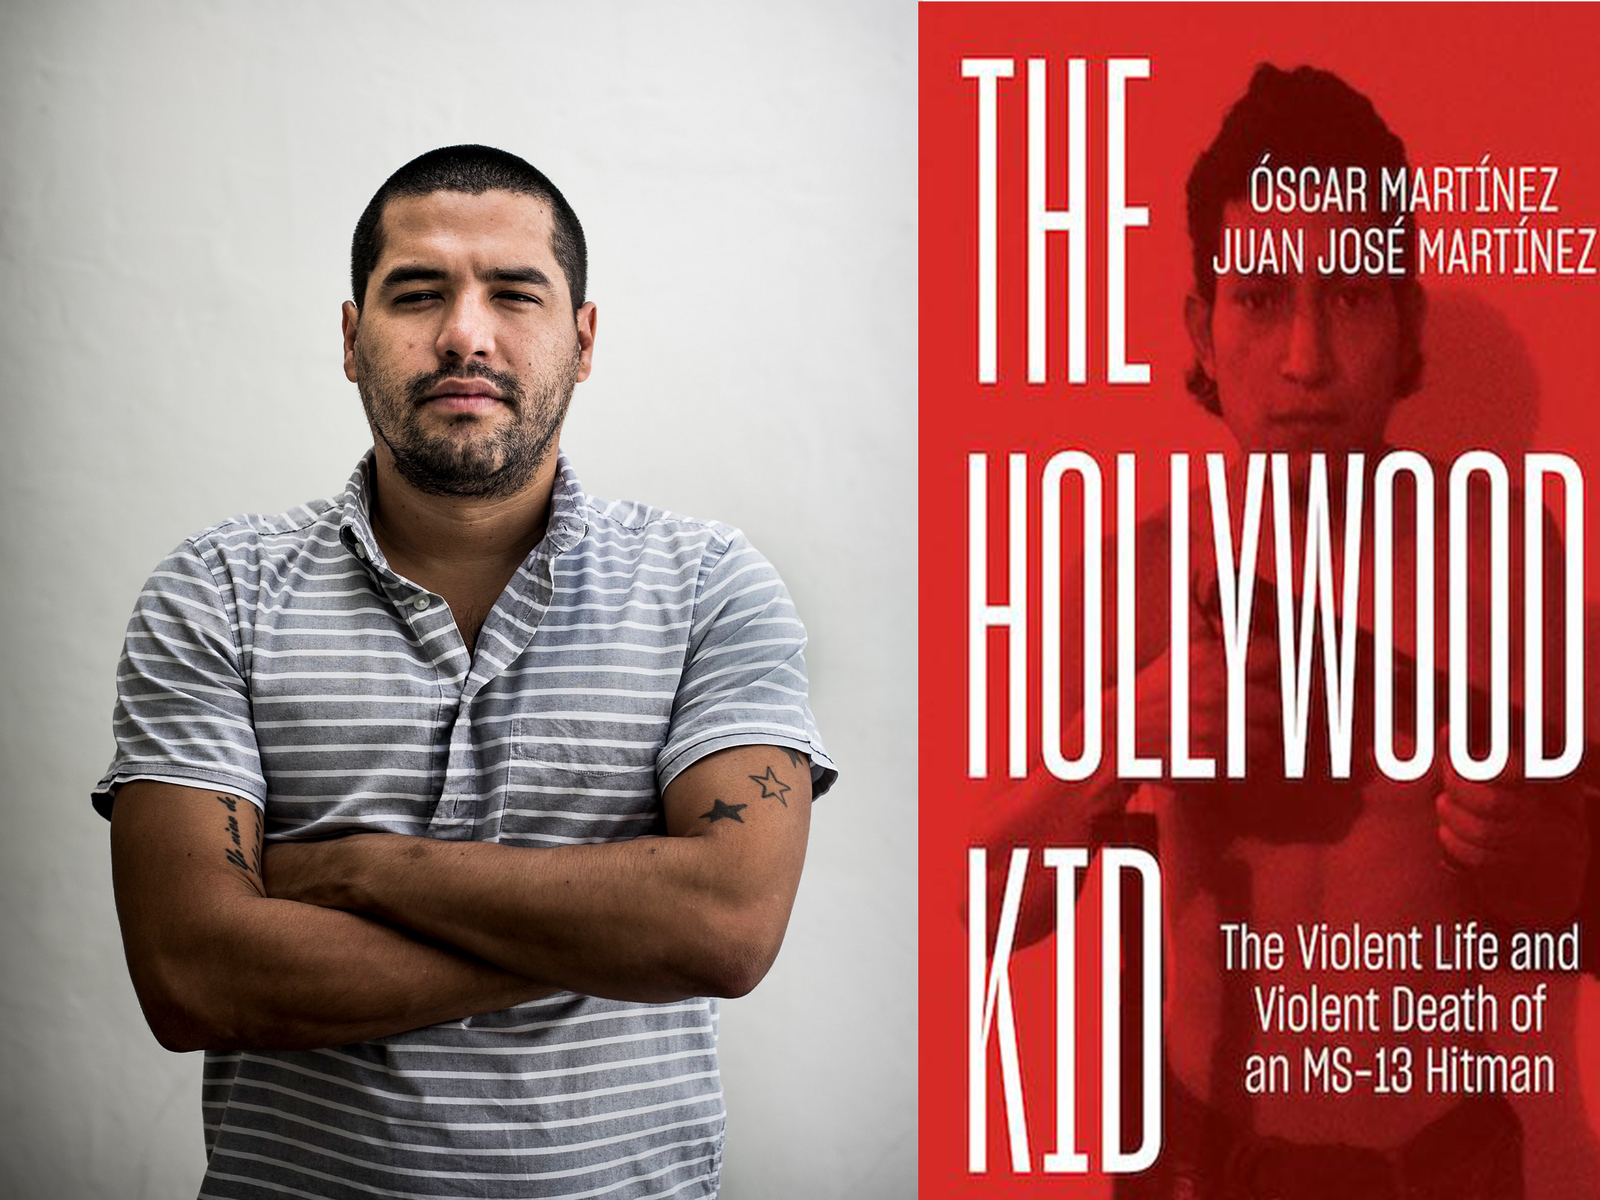 The Hollywood Kid: How the U.S. and El Salvador Created the Mara Salvatrucha